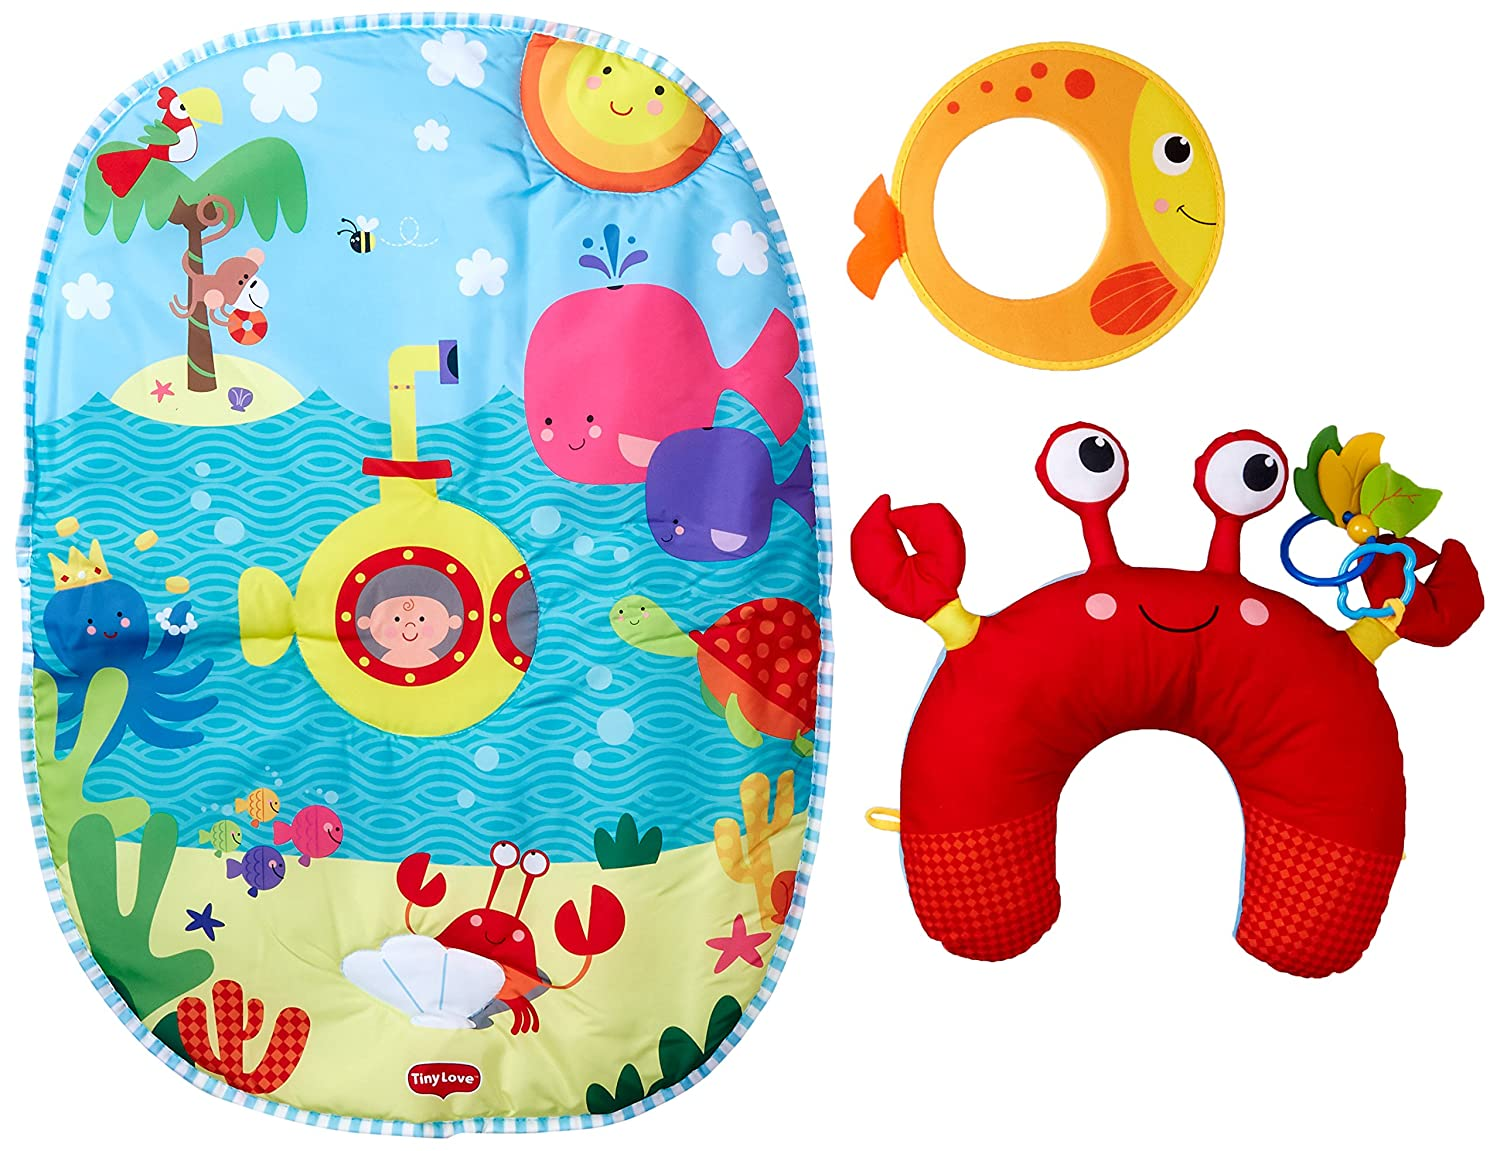 Tiny Love Tummy Time Under The Sea Playmat 33312036